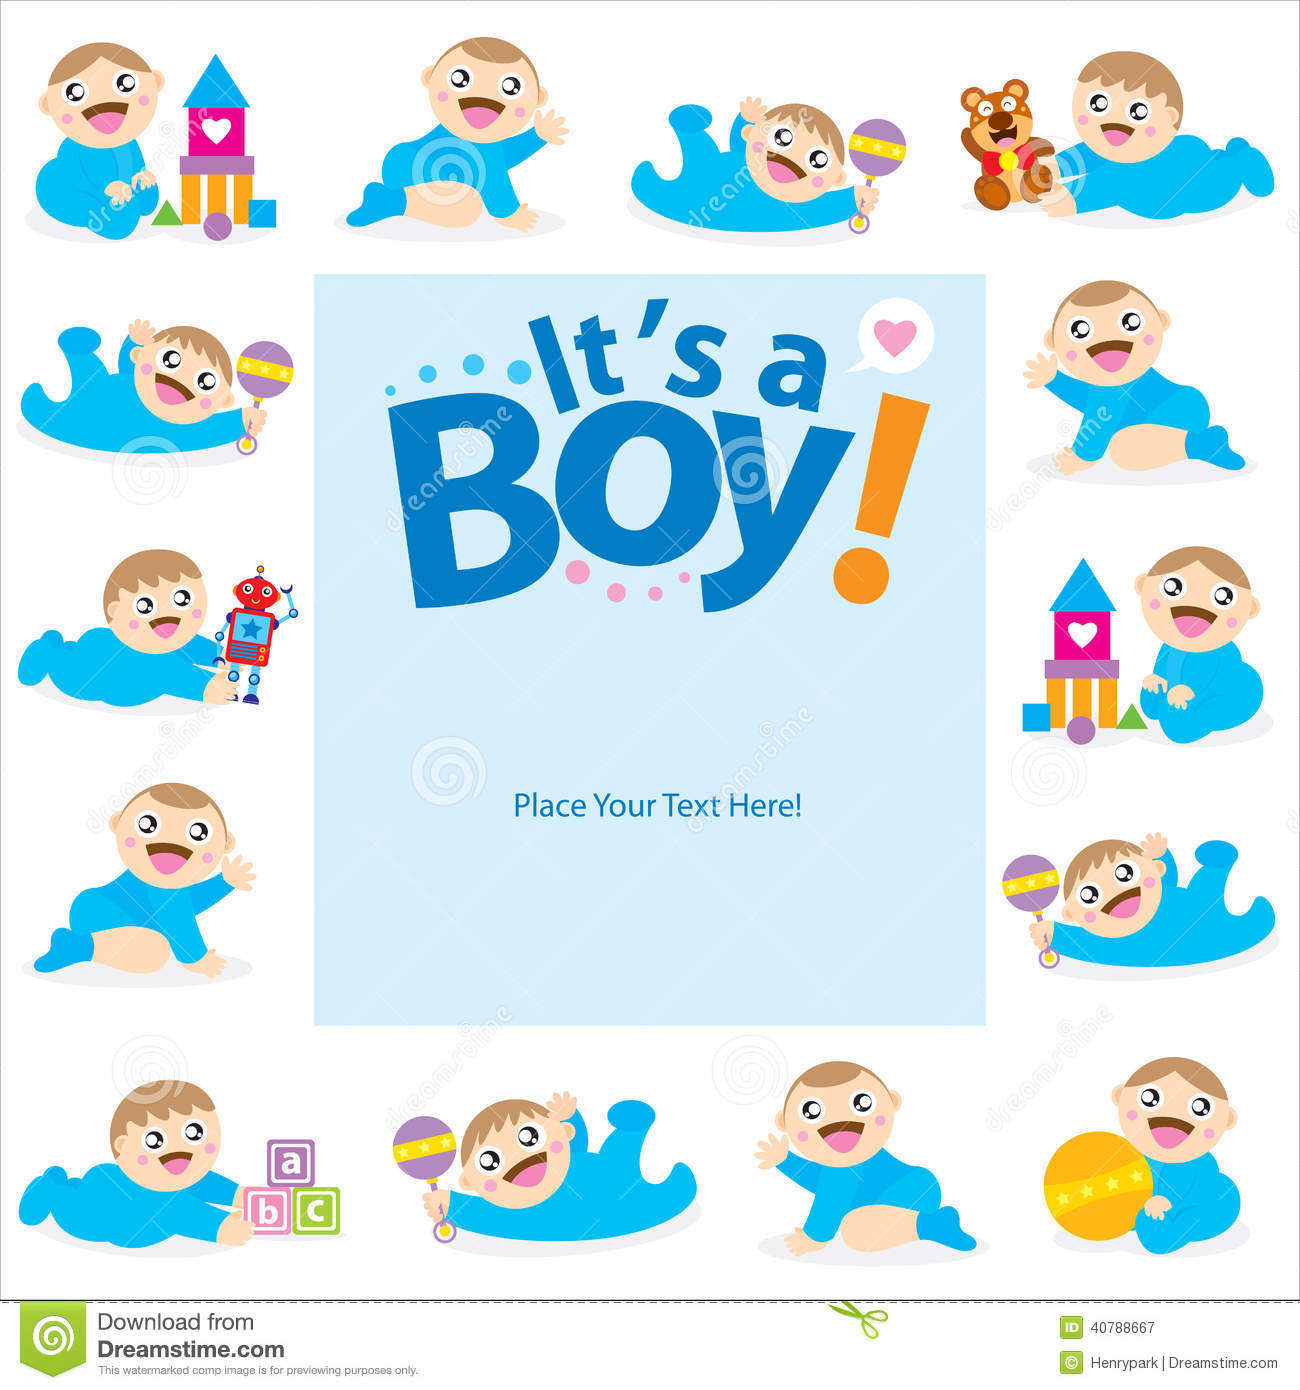 Baby boy greeting card design stock vector illustration of baby boy greeting card design m4hsunfo